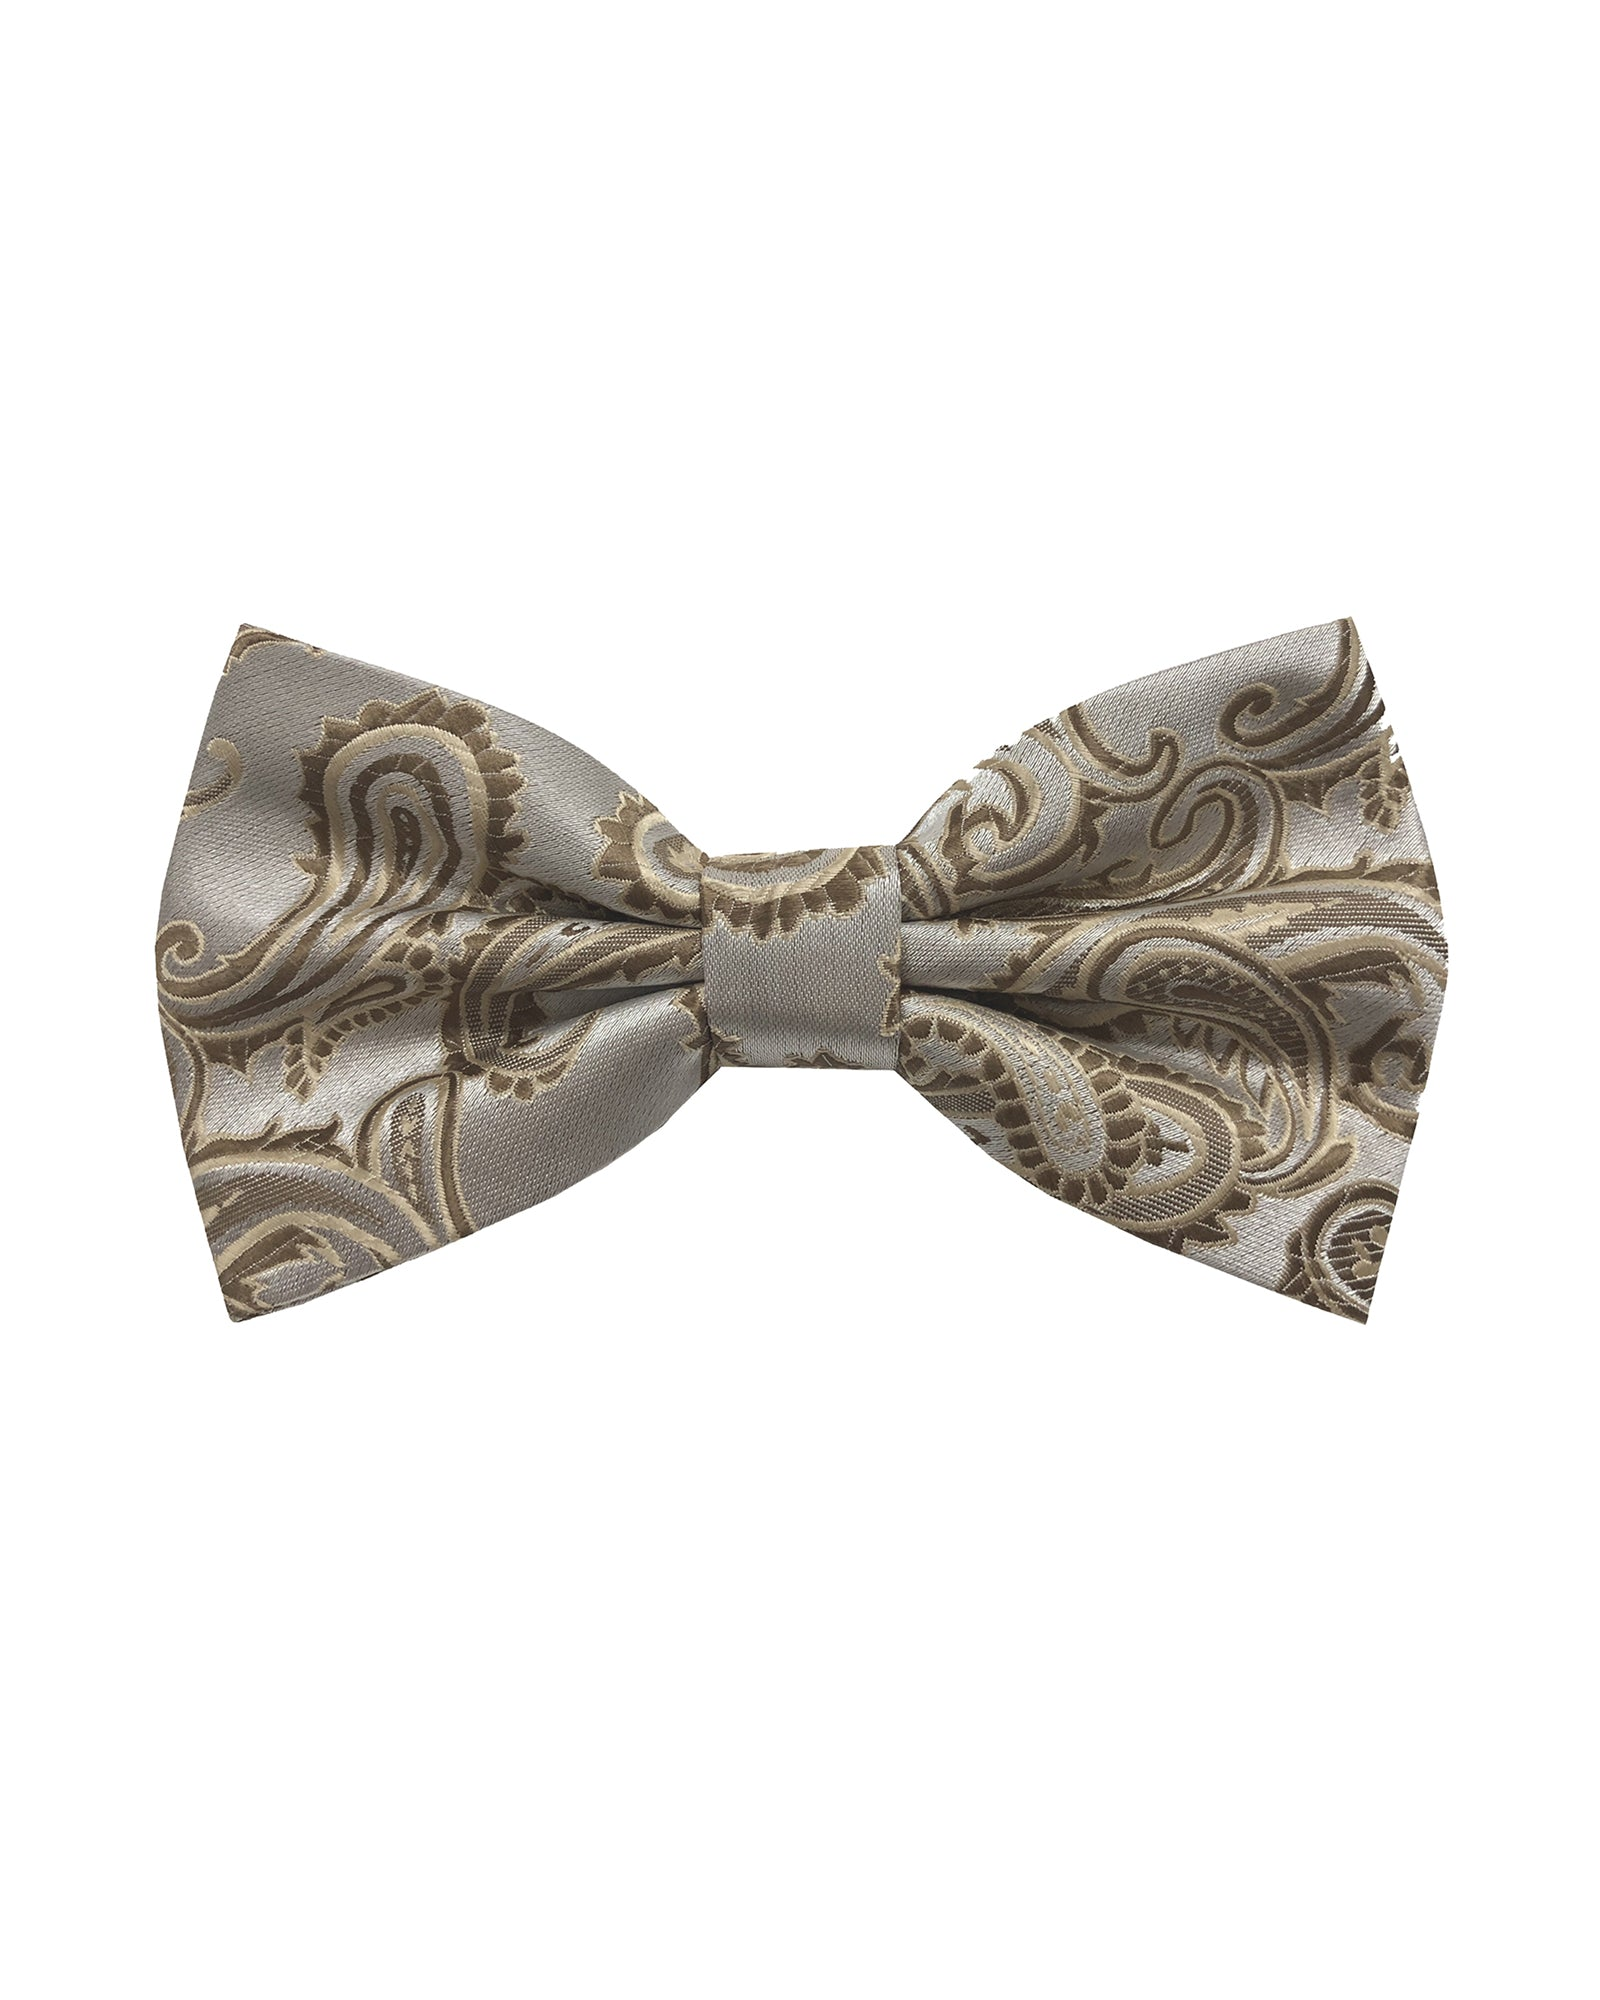 Bow Tie In Paisley Pattern Champagne & Brown - Rainwater's